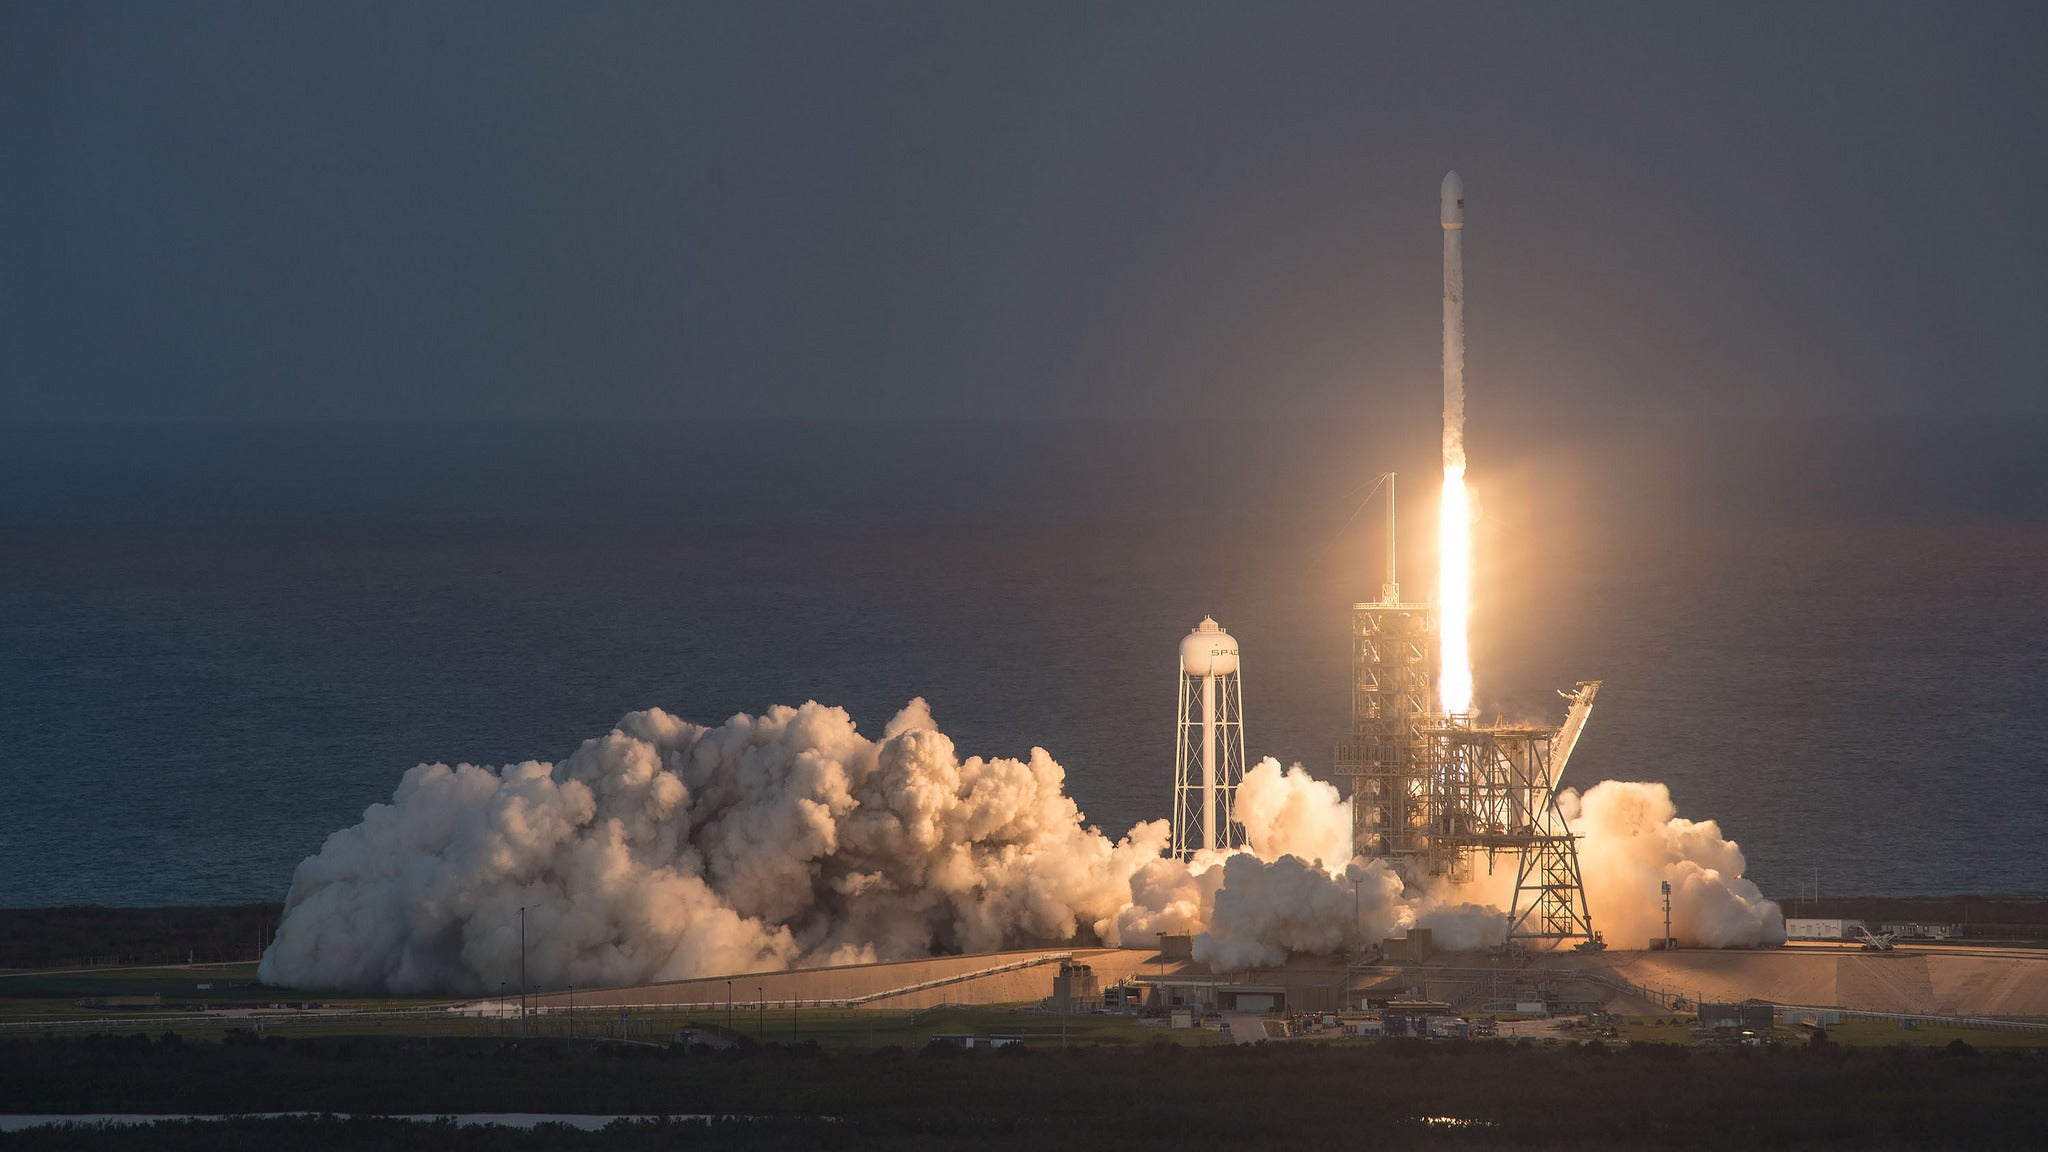 SpaceX sends recycled rocket to dock with ISS in world first